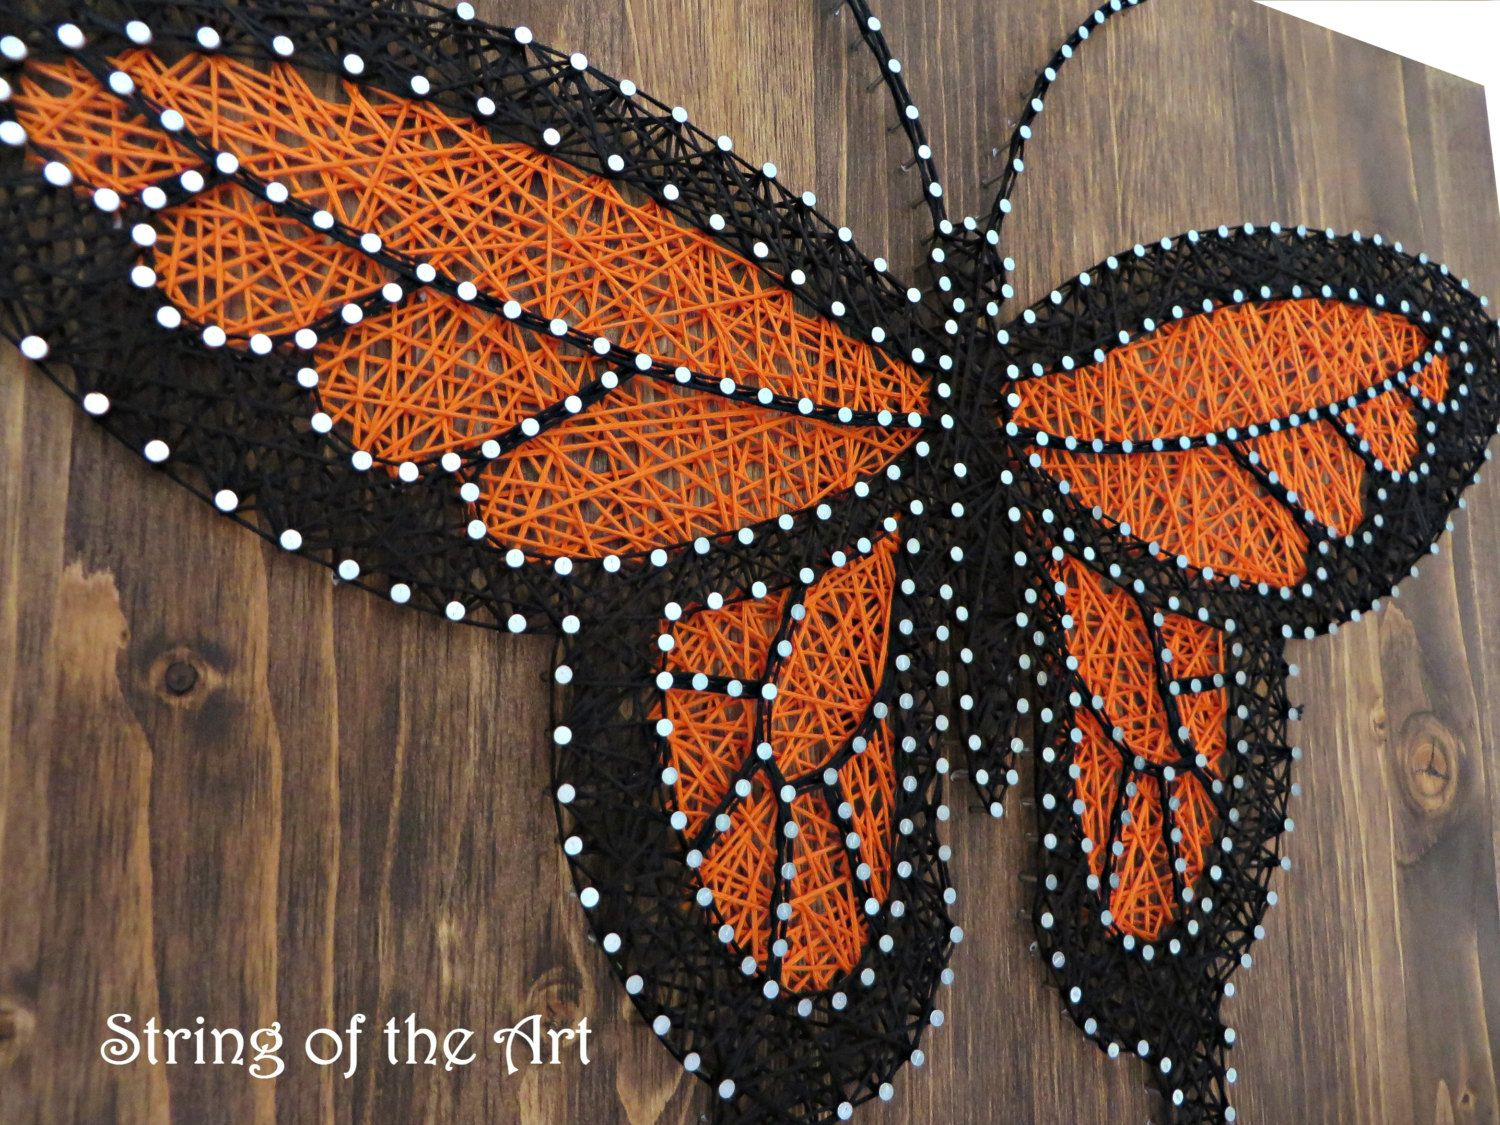 butterfly string art kit adult crafts kit diy string art. Black Bedroom Furniture Sets. Home Design Ideas